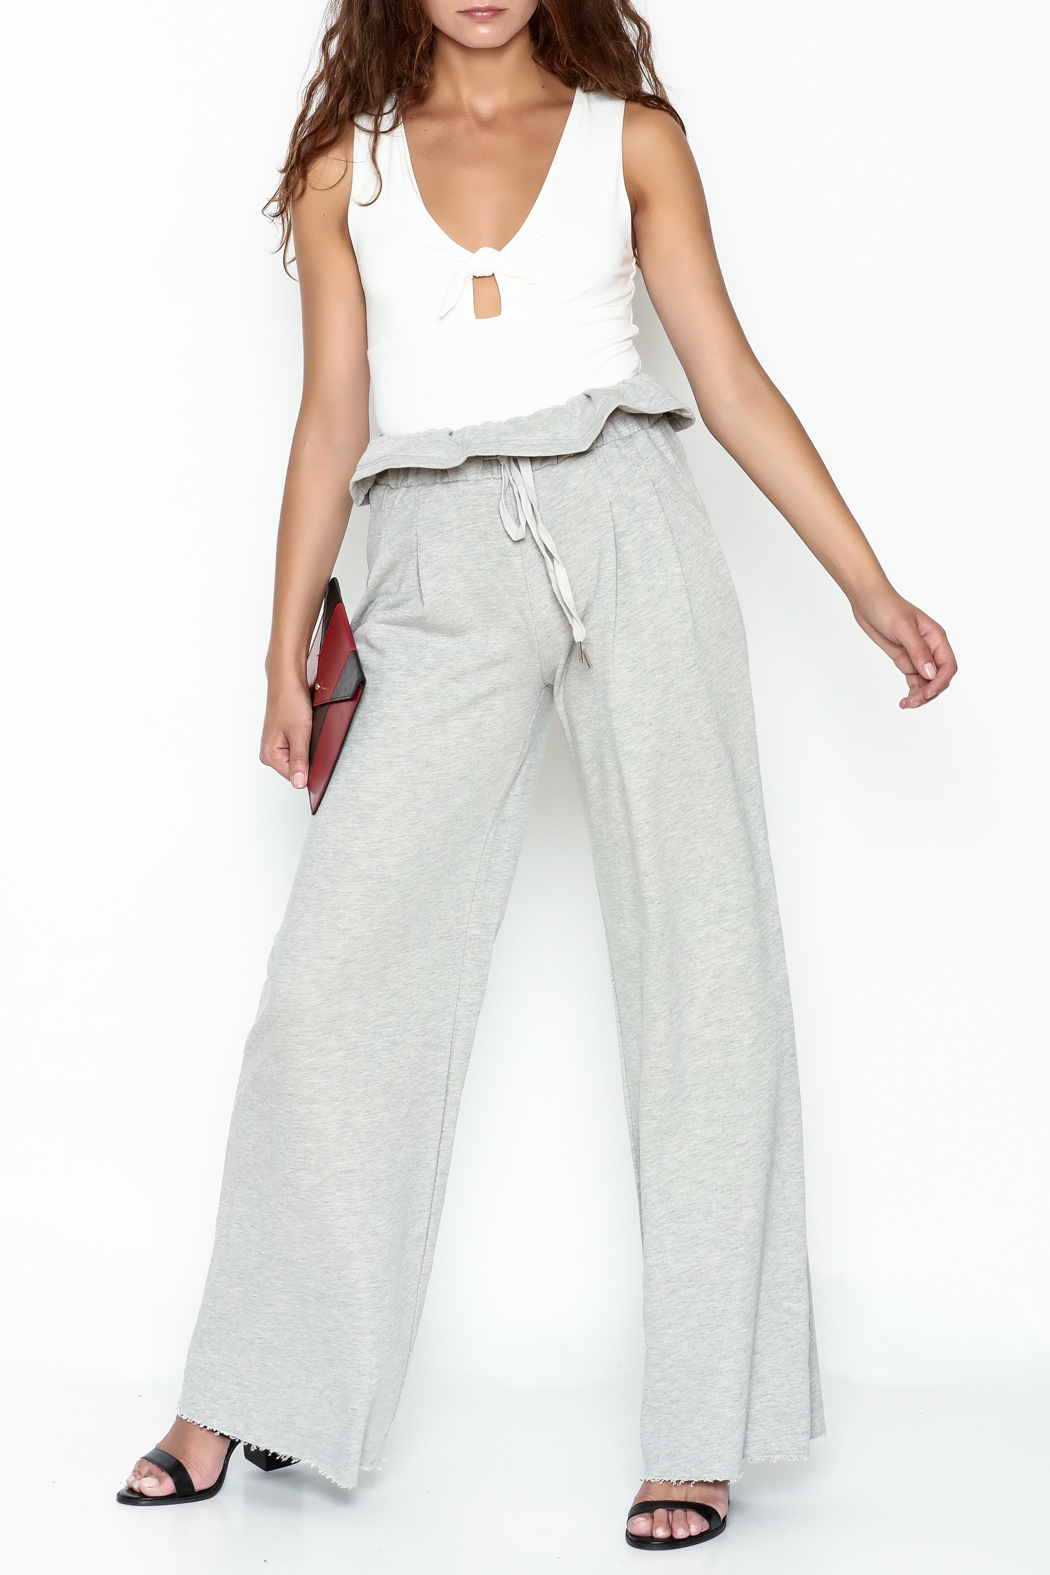 etophe Ruffle Waist Knit Pants - Side Cropped Image